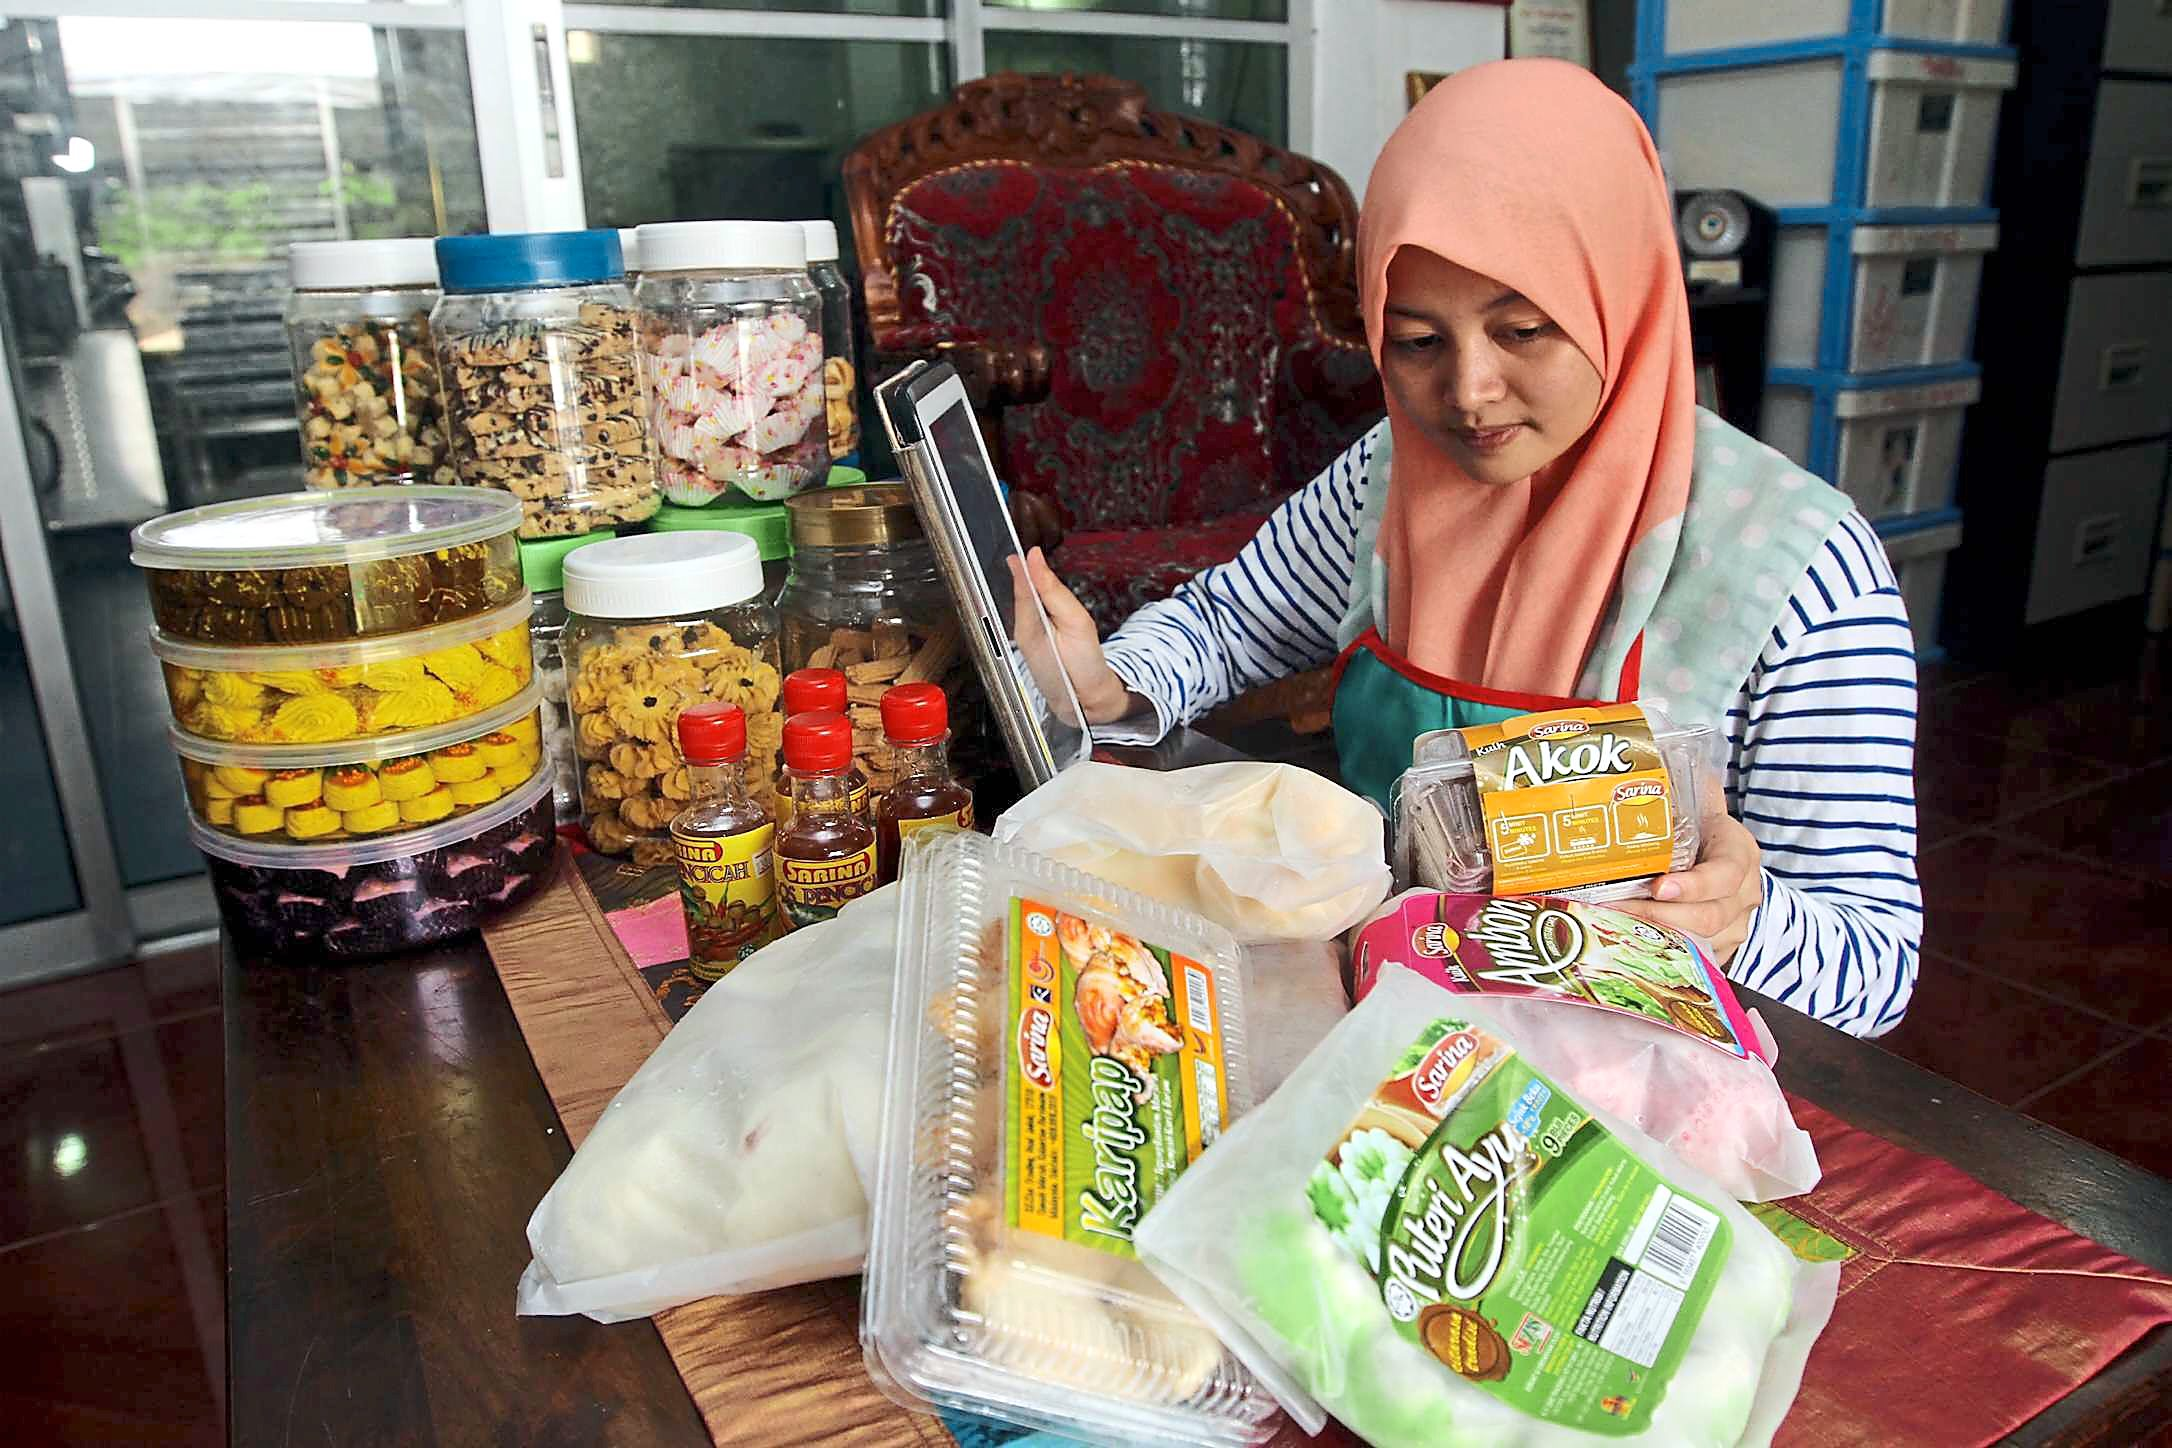 Nurul Hafizah has been selling frozen food that includes the akok traditional kueh for the past 10 years.   Her orders have doubled since setting up the foodmarket.my  Facebook page